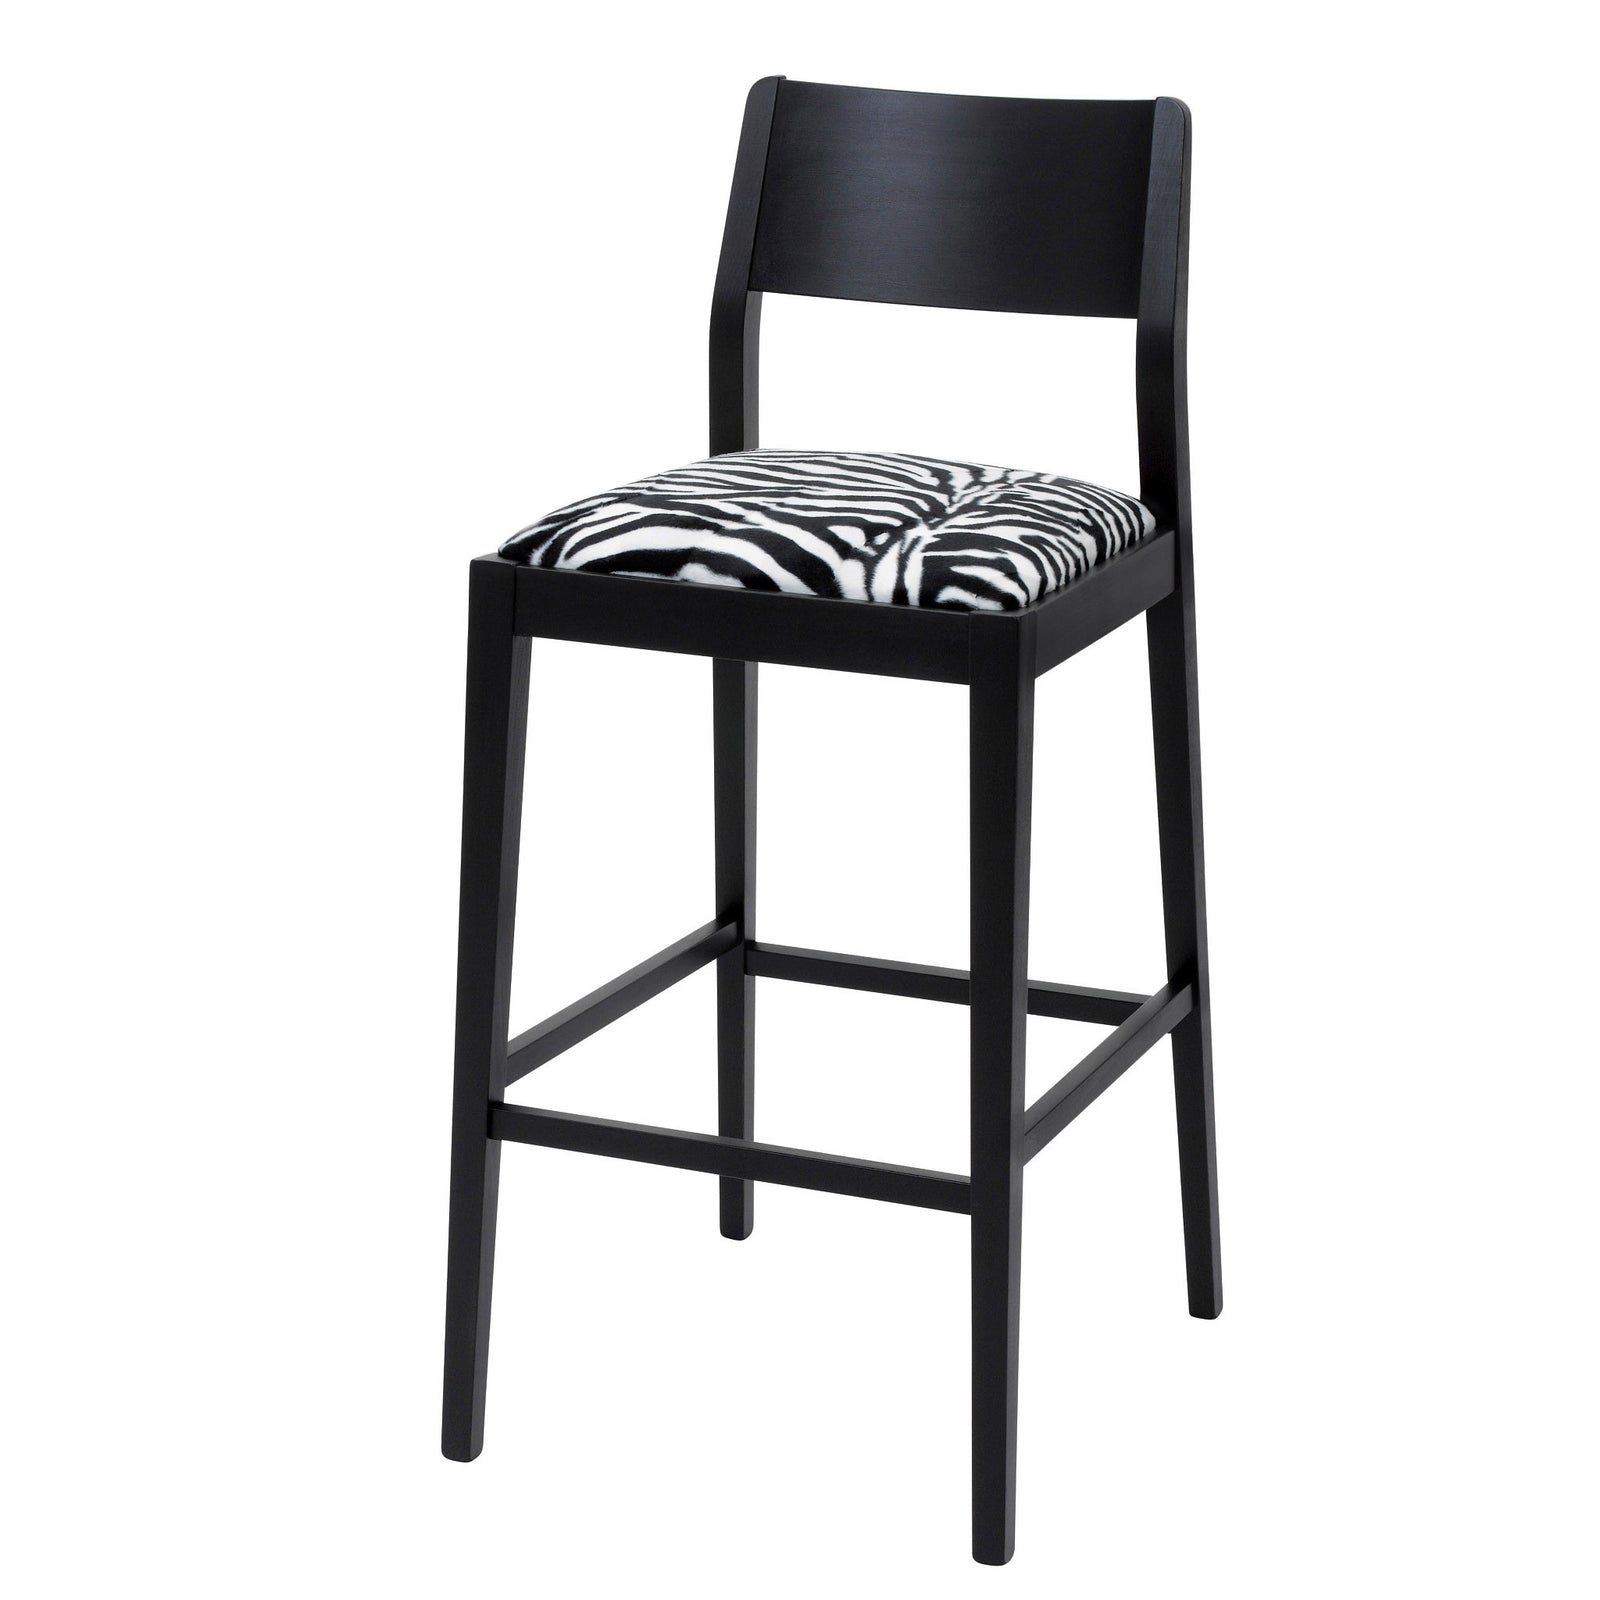 The James designer bar stool upholstered in Zebra Faux fur and finished in Matte Black.